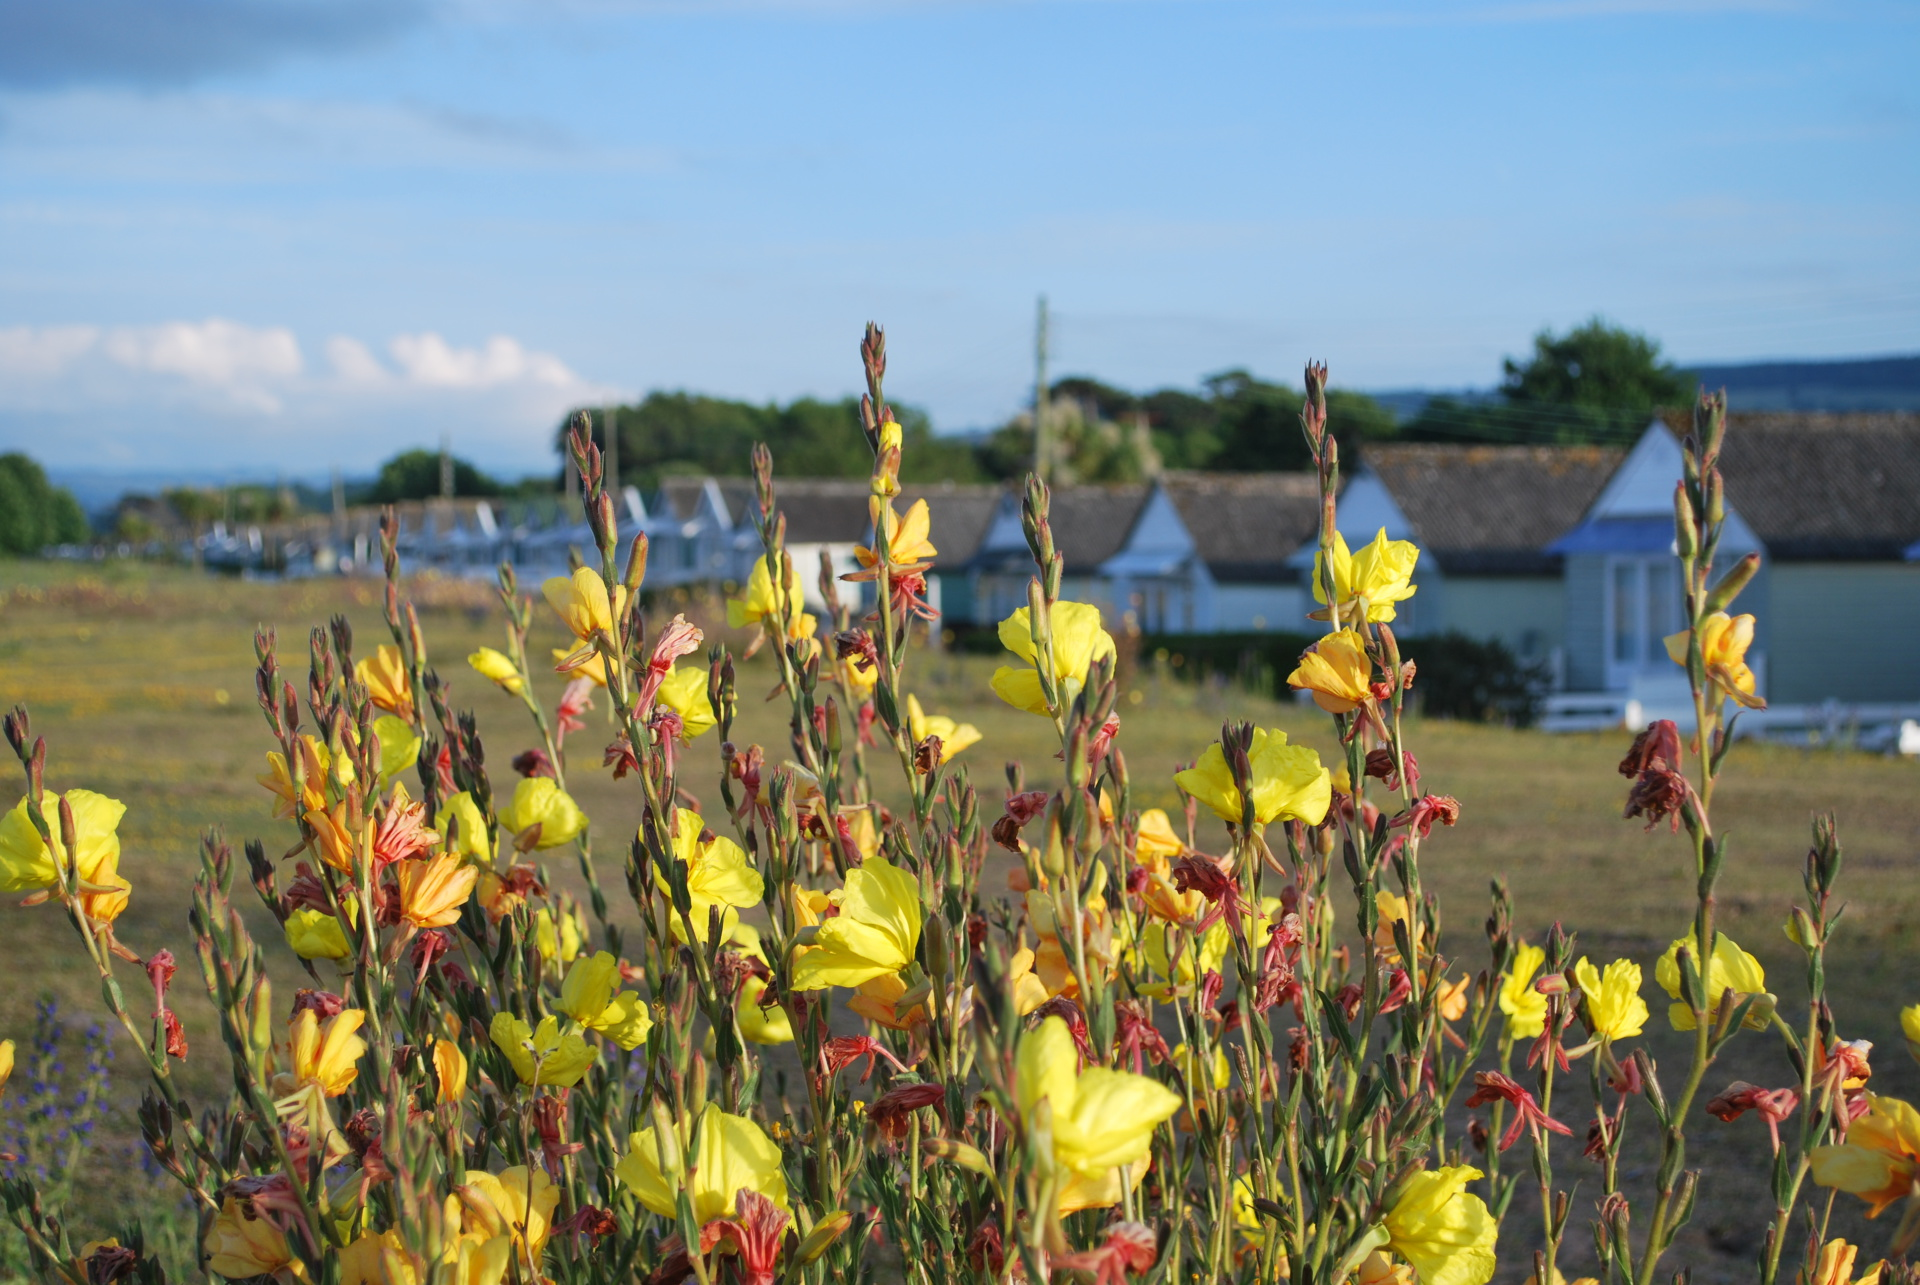 somerset, dunster, beach, hut, salad, days, wild, flower, dunes, evening, primrose